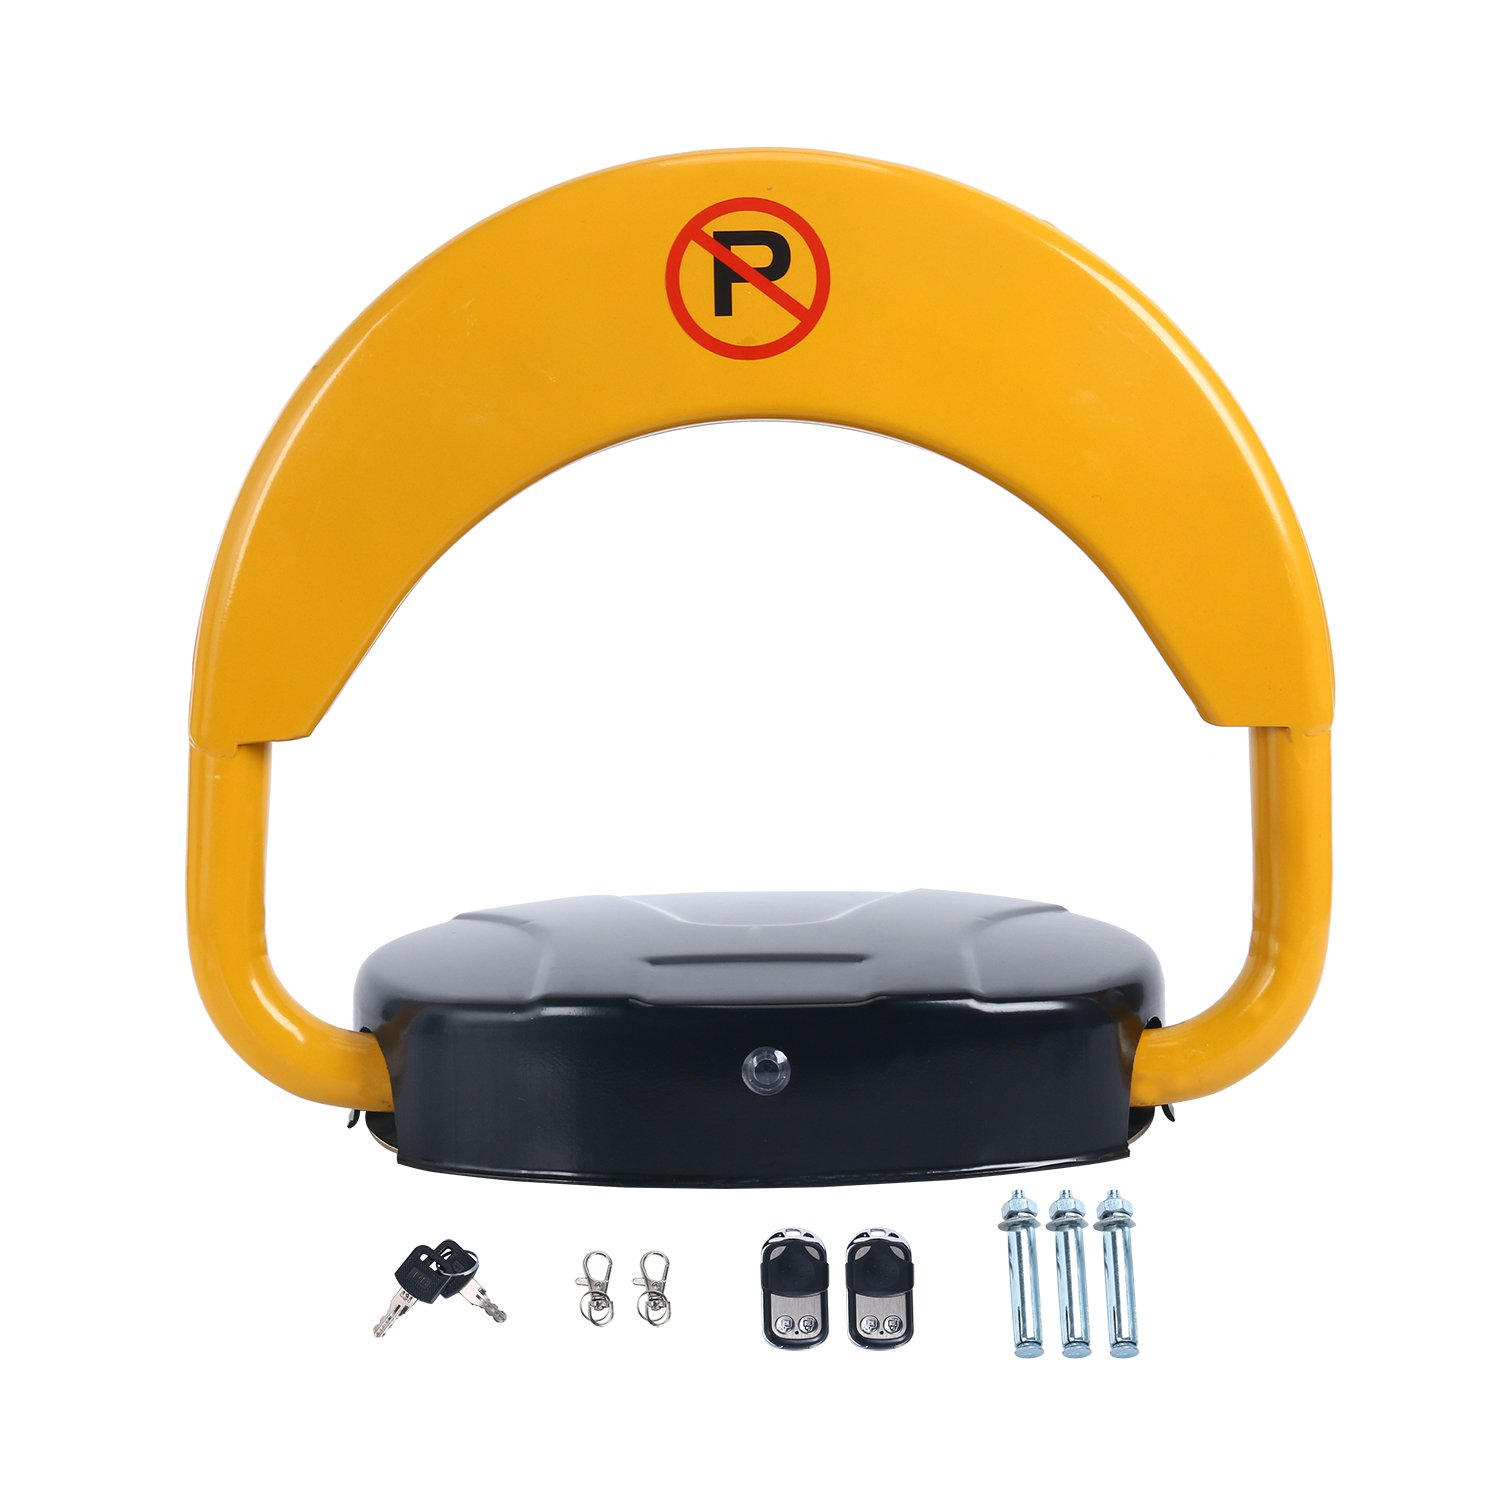 Homend Automatic Remote Control Parking Lock Remote Control Carport Auto Parking Space Lock Easy Installation